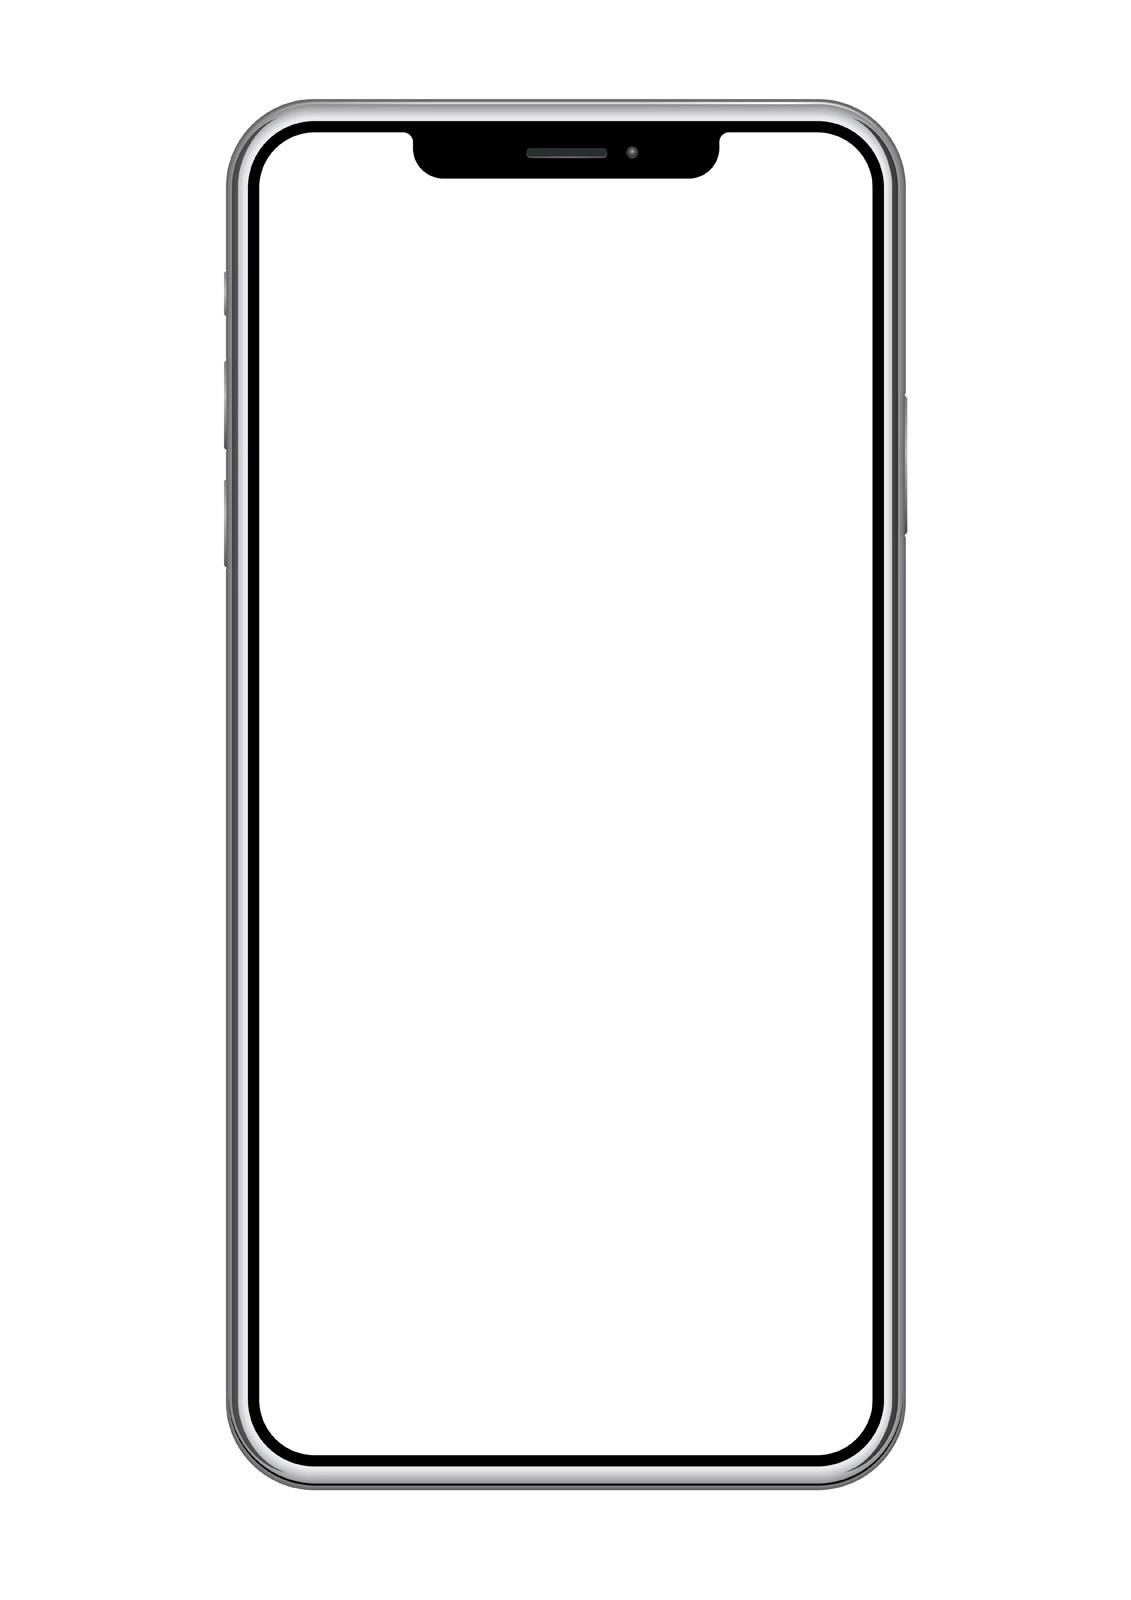 Smartphone with a blank screen isolated on a white